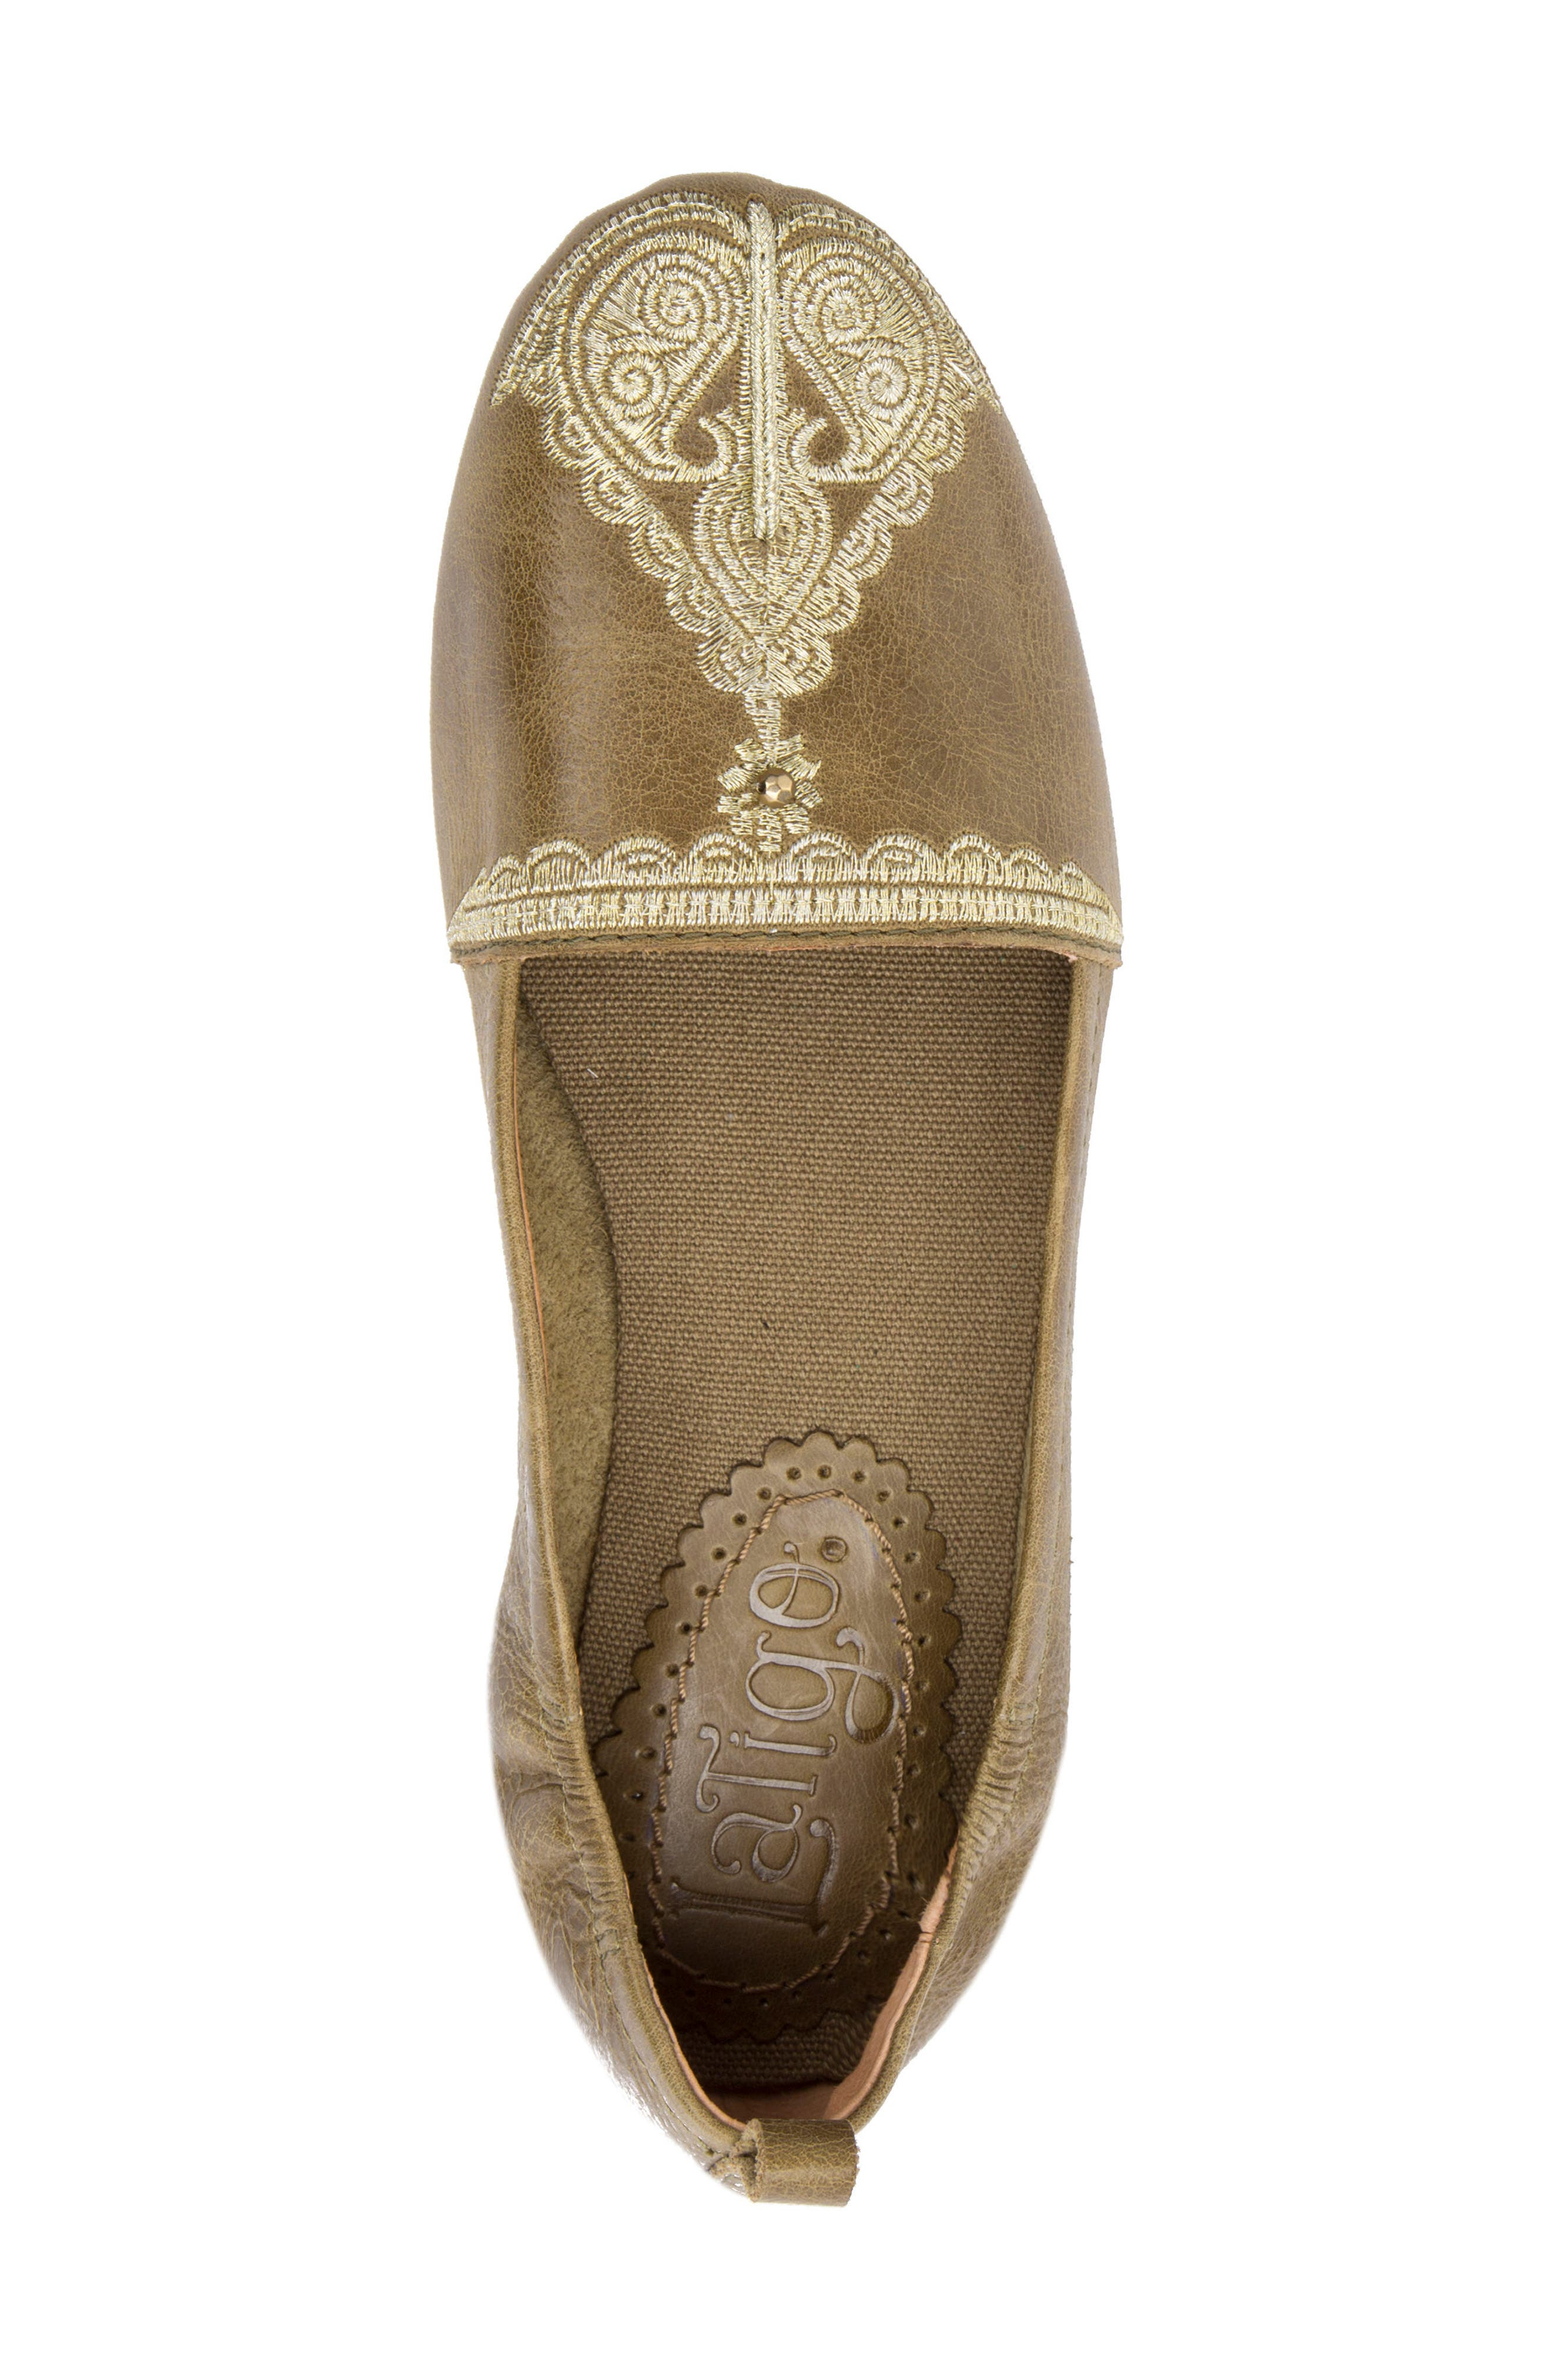 Bonzai Embroidered Flat,                             Alternate thumbnail 5, color,                             Olive Leather